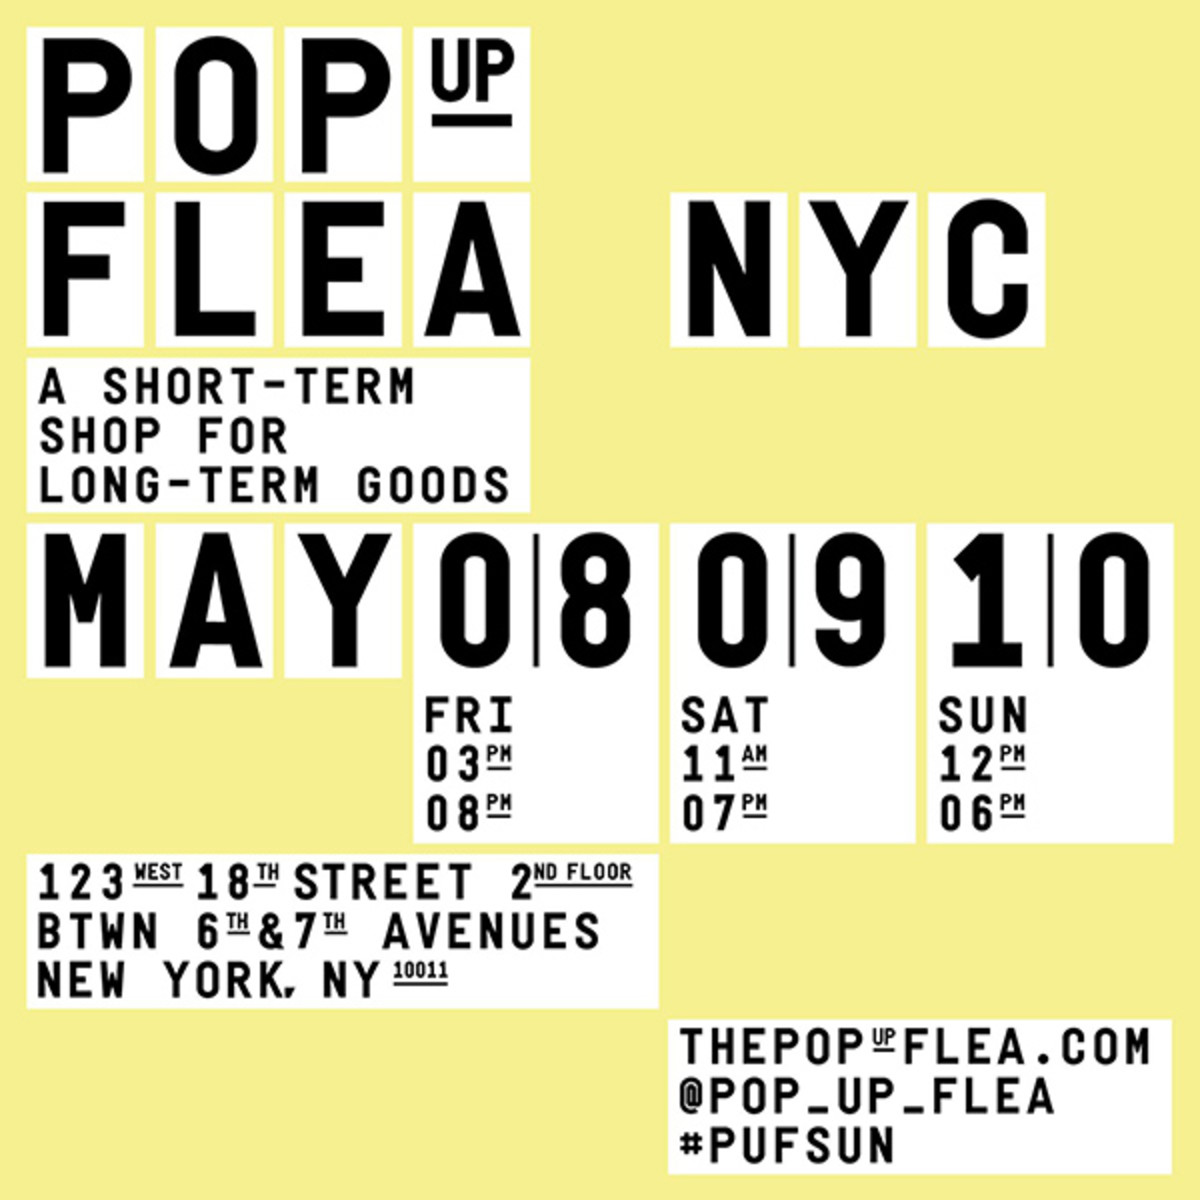 Photo: Pop Up Flea